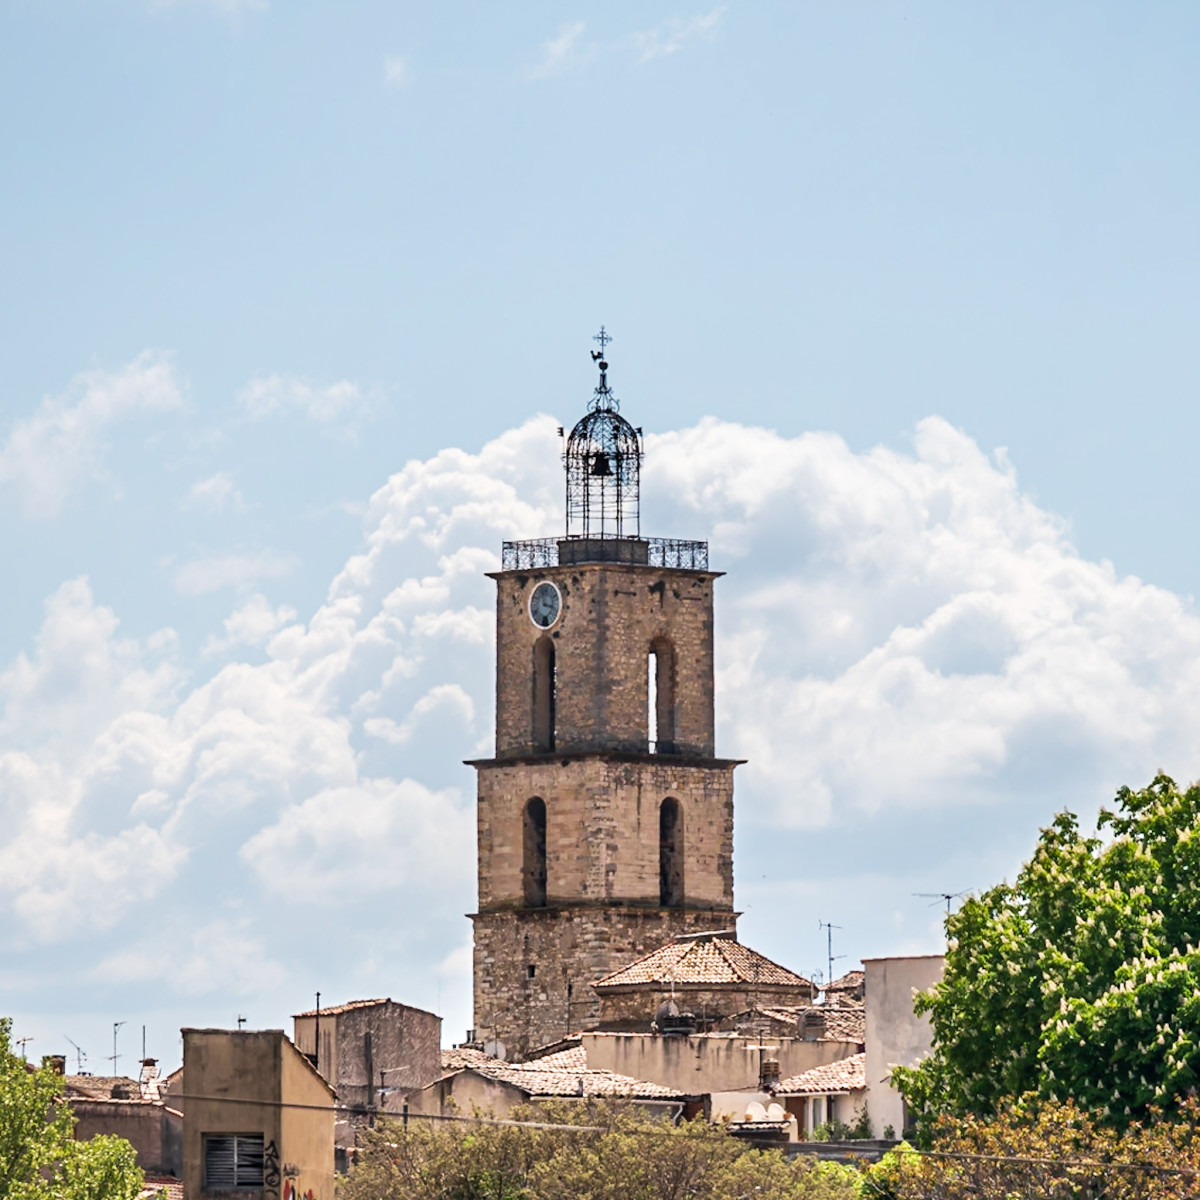 Giono's hometown of Manosque in the Alpes-haute-de-provence Department of France.